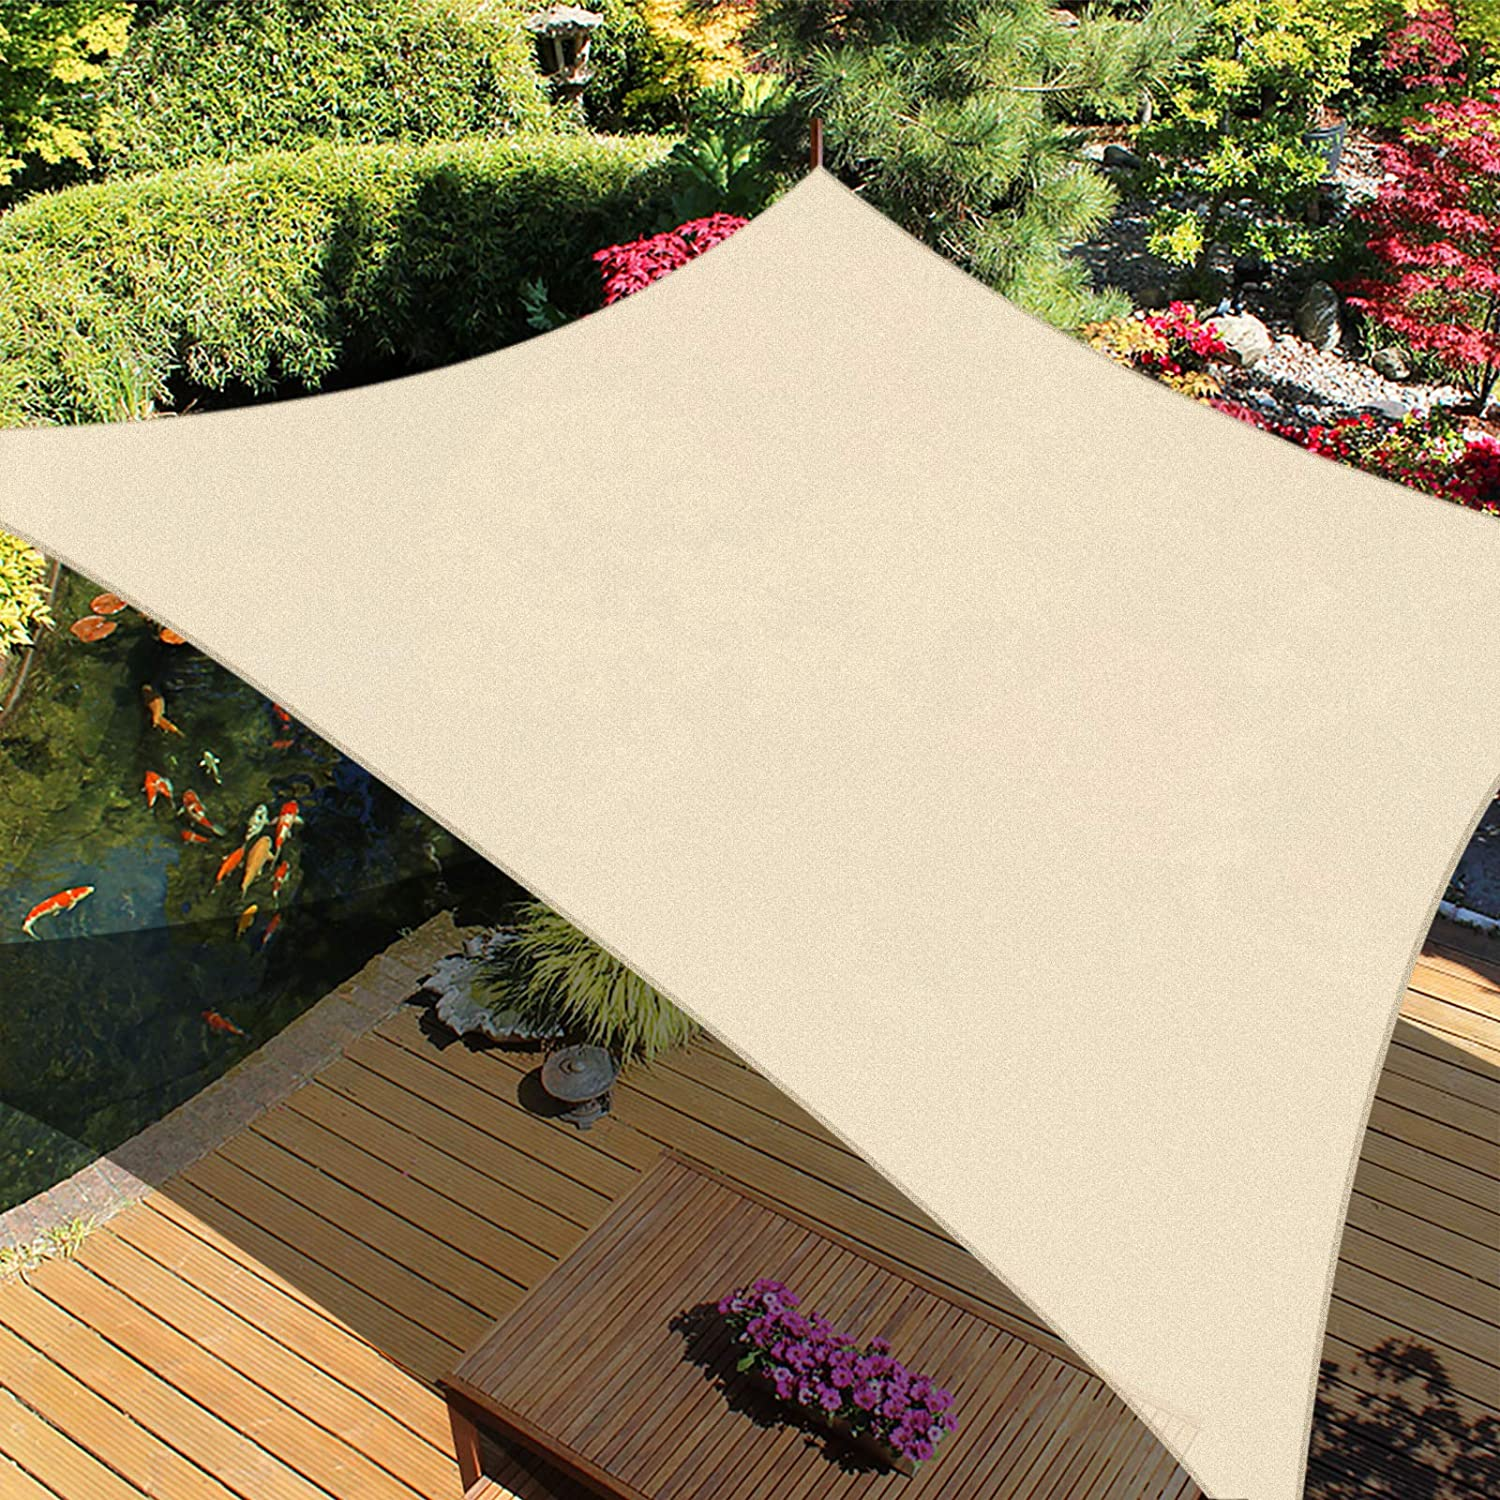 iCOVER Sun Shade Sail Canopy, 185GSM Fabric Permeable Pergolas Top Cover, for Outdoor Patio Lawn Garden Backyard Awning, 8'x12', Beige